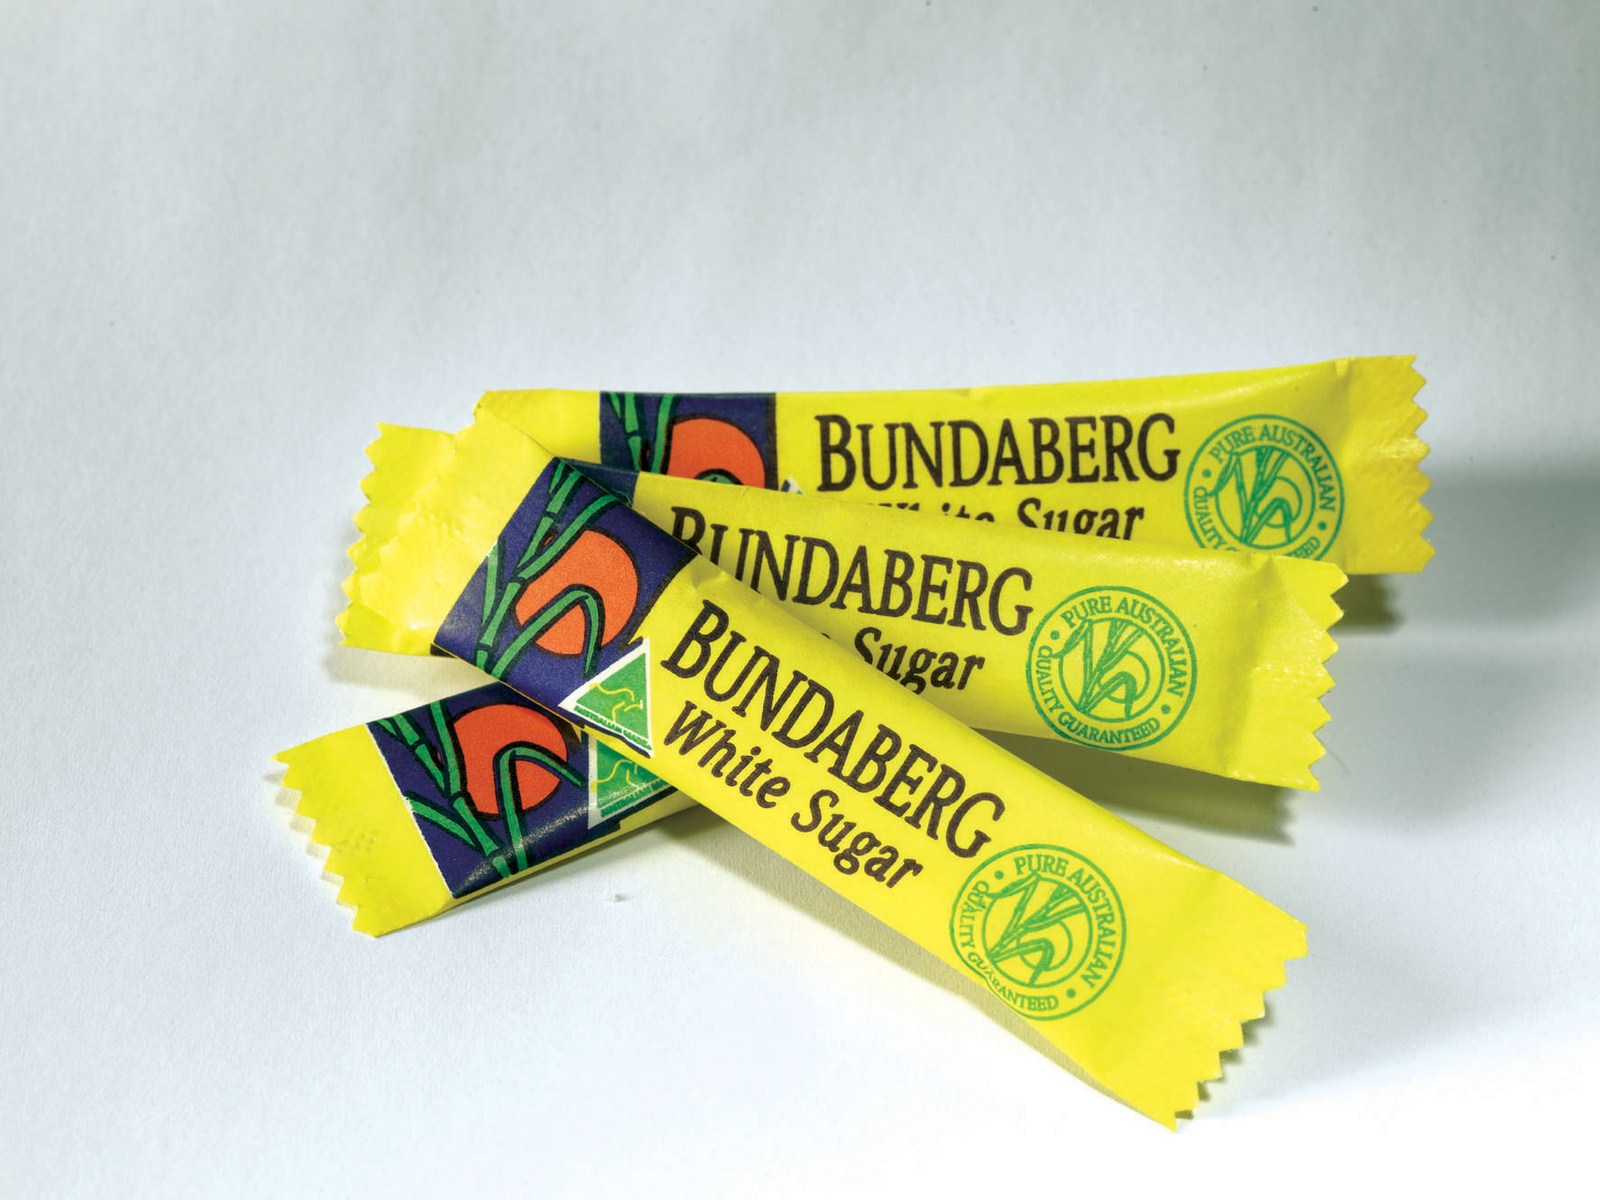 Bundaberg White Sugar